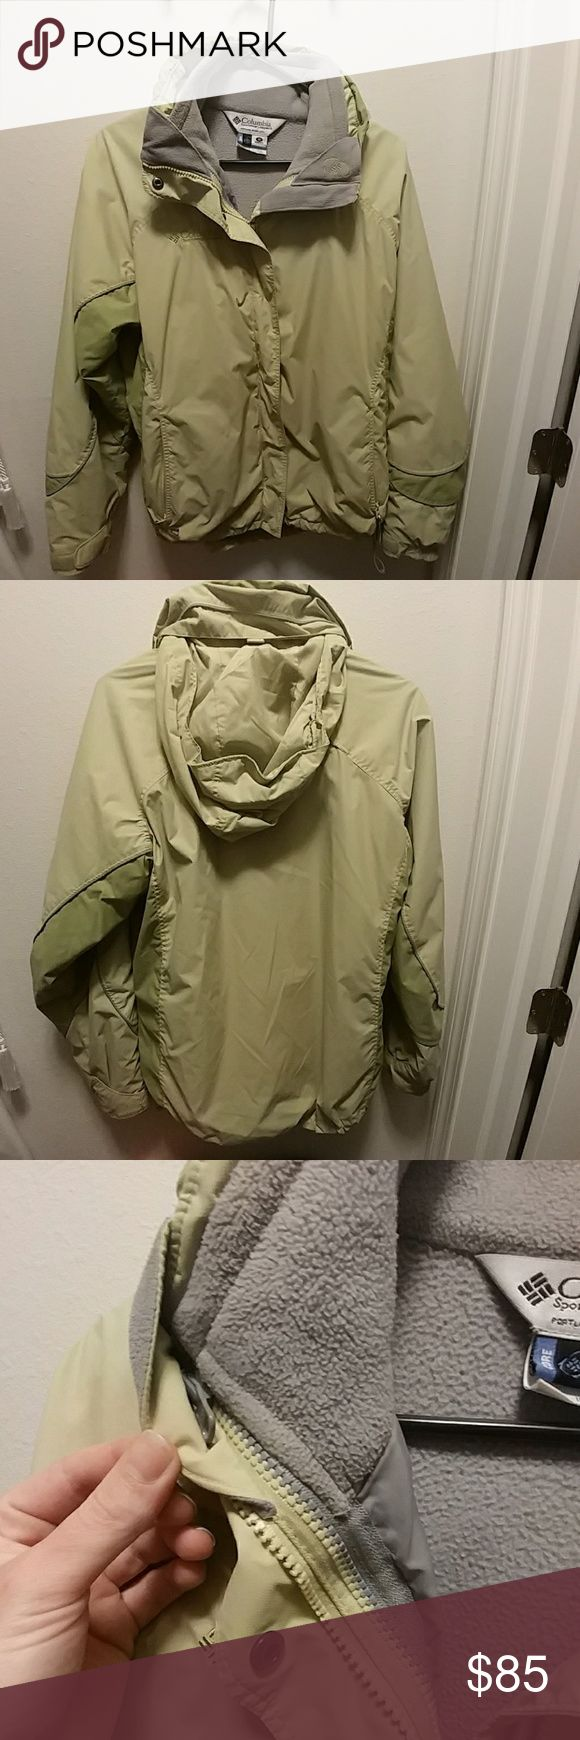 🎆SALE🎆Columbia Jacket Women's Green Columbia Jacket with removable fleece liner (great to wear separately for spring/fall weather. Color: heather grey) also has attached hood that can be zipped away in hidden pocket. Many pockets! Also has tabs to loosen/tighten waist of jacket. Hate to say goodbye but got a new Columbia this Winter. Great condition; outside liner may need a wash. Make me an offer! Columbia Jackets & Coats